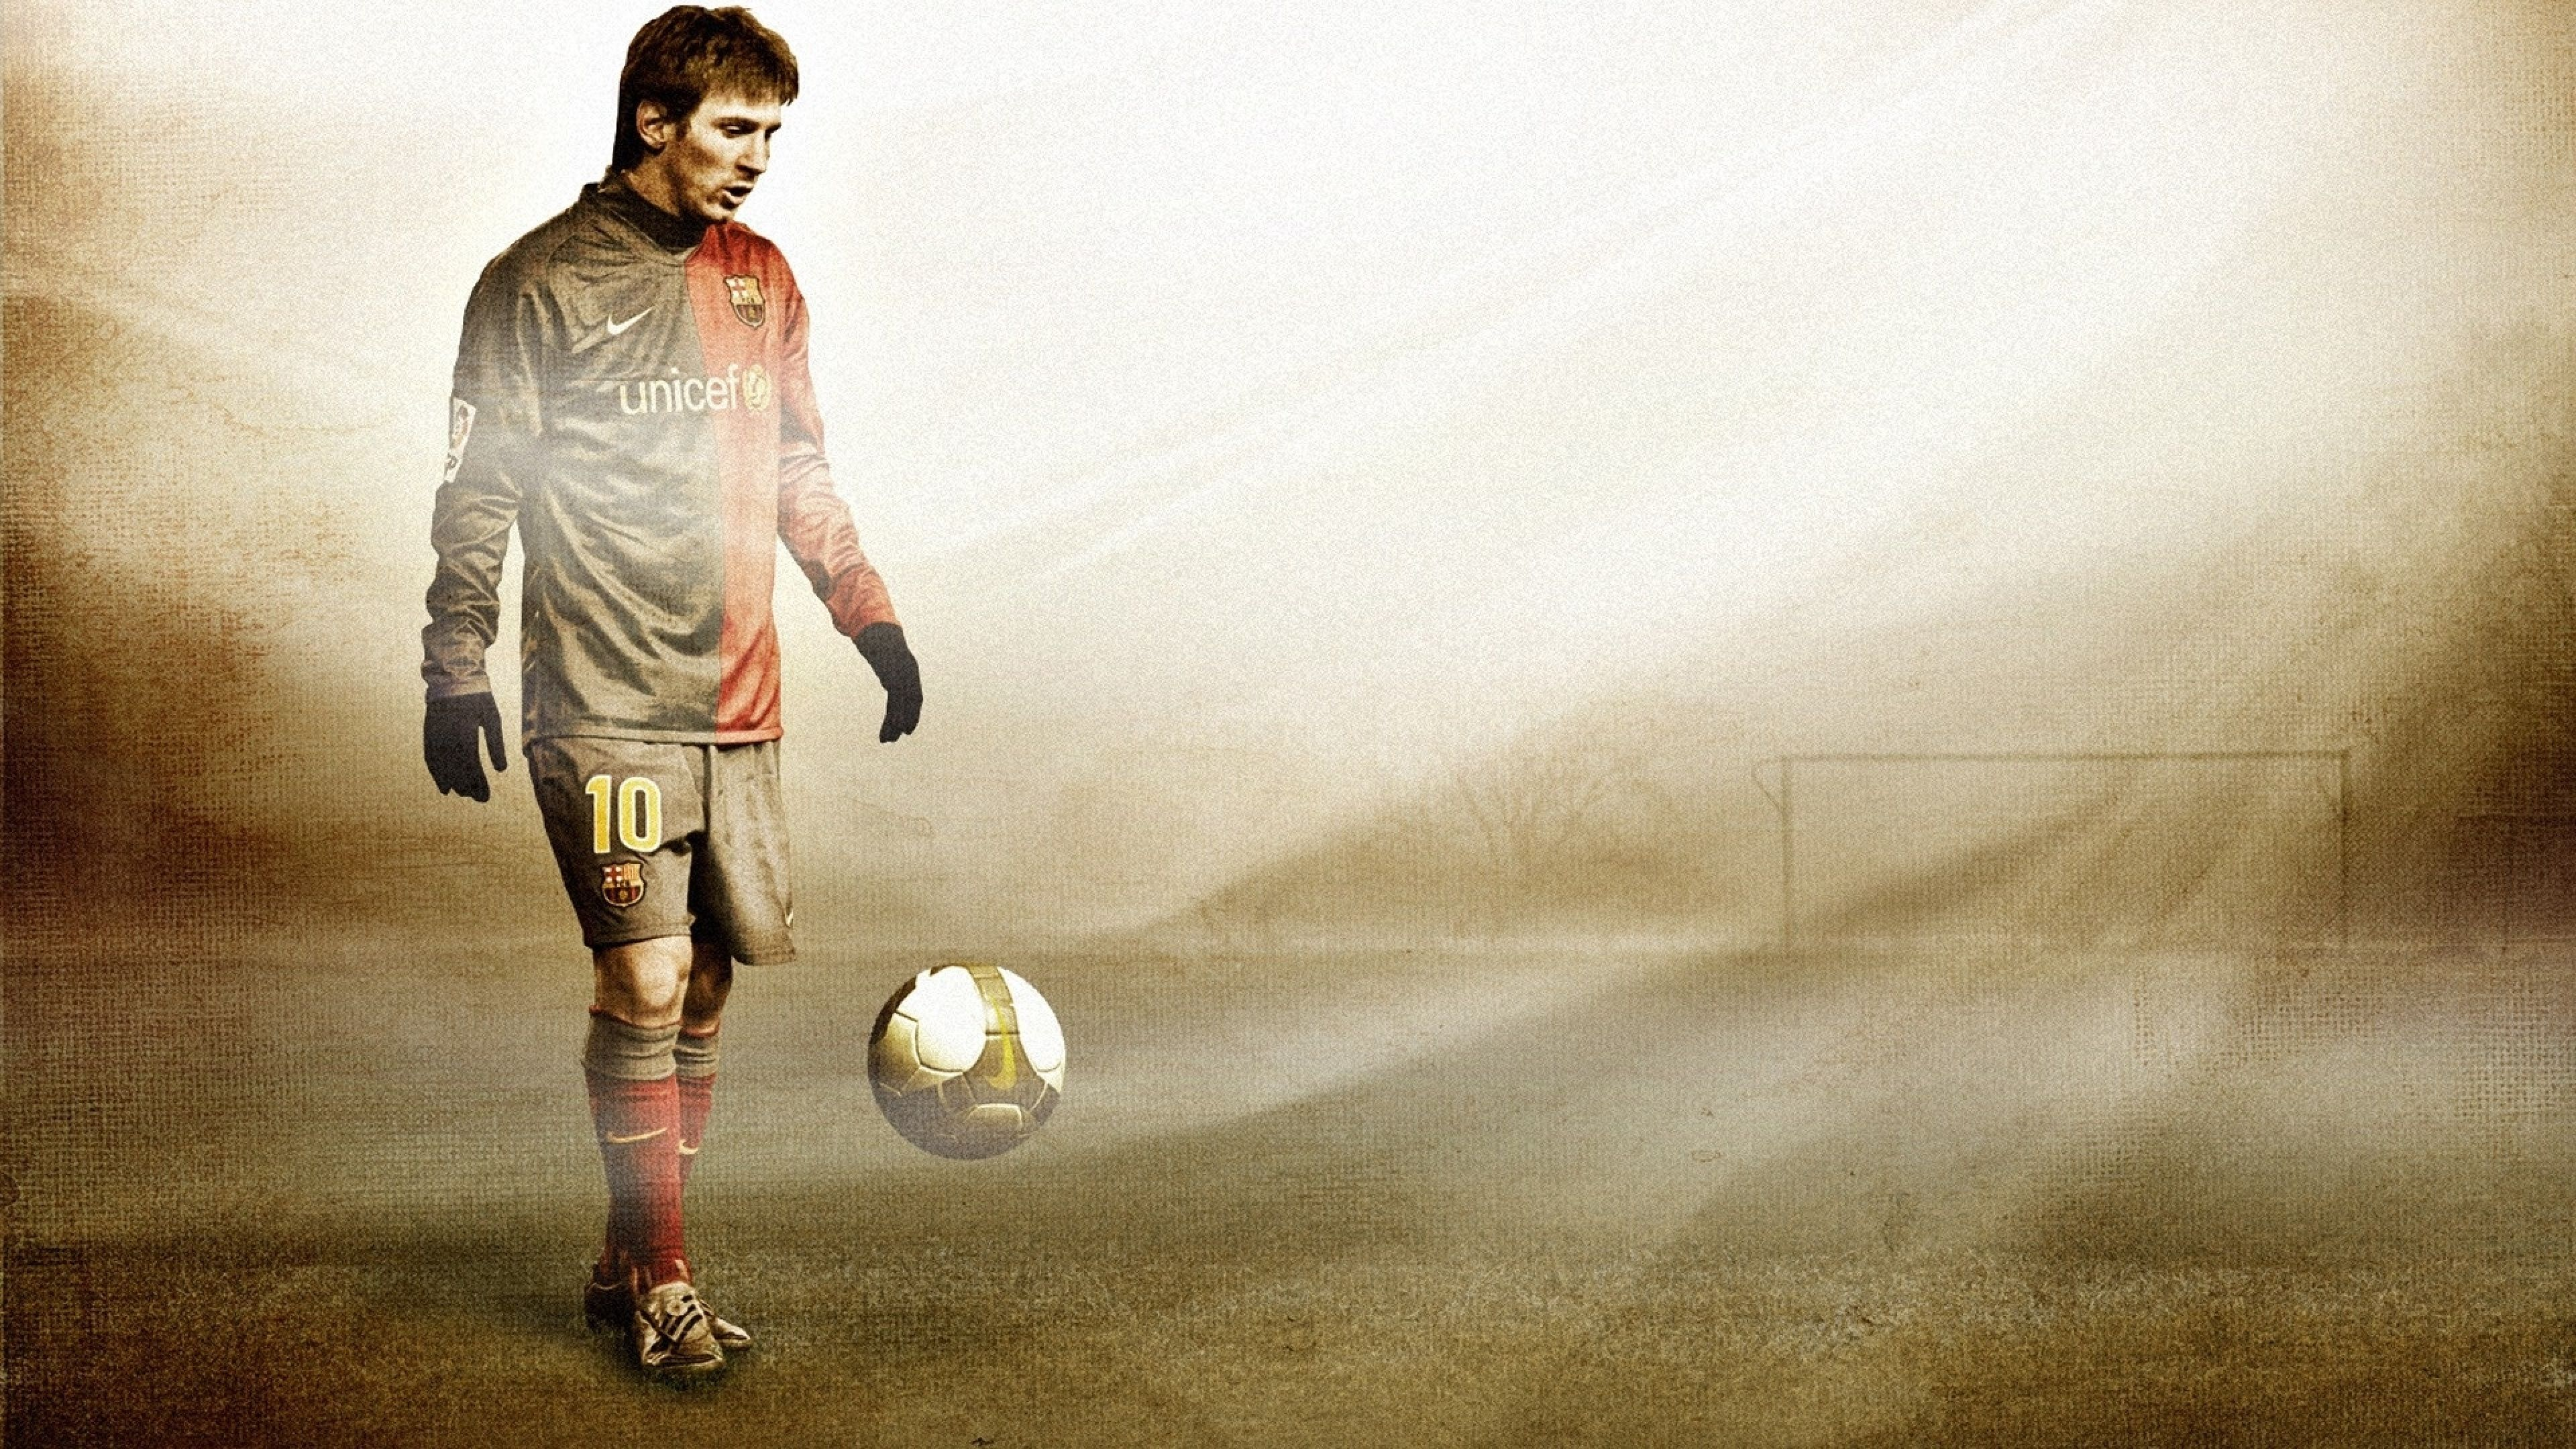 Download Wallpapers 3840x2160 Lionel messi, Football, Ball, Field